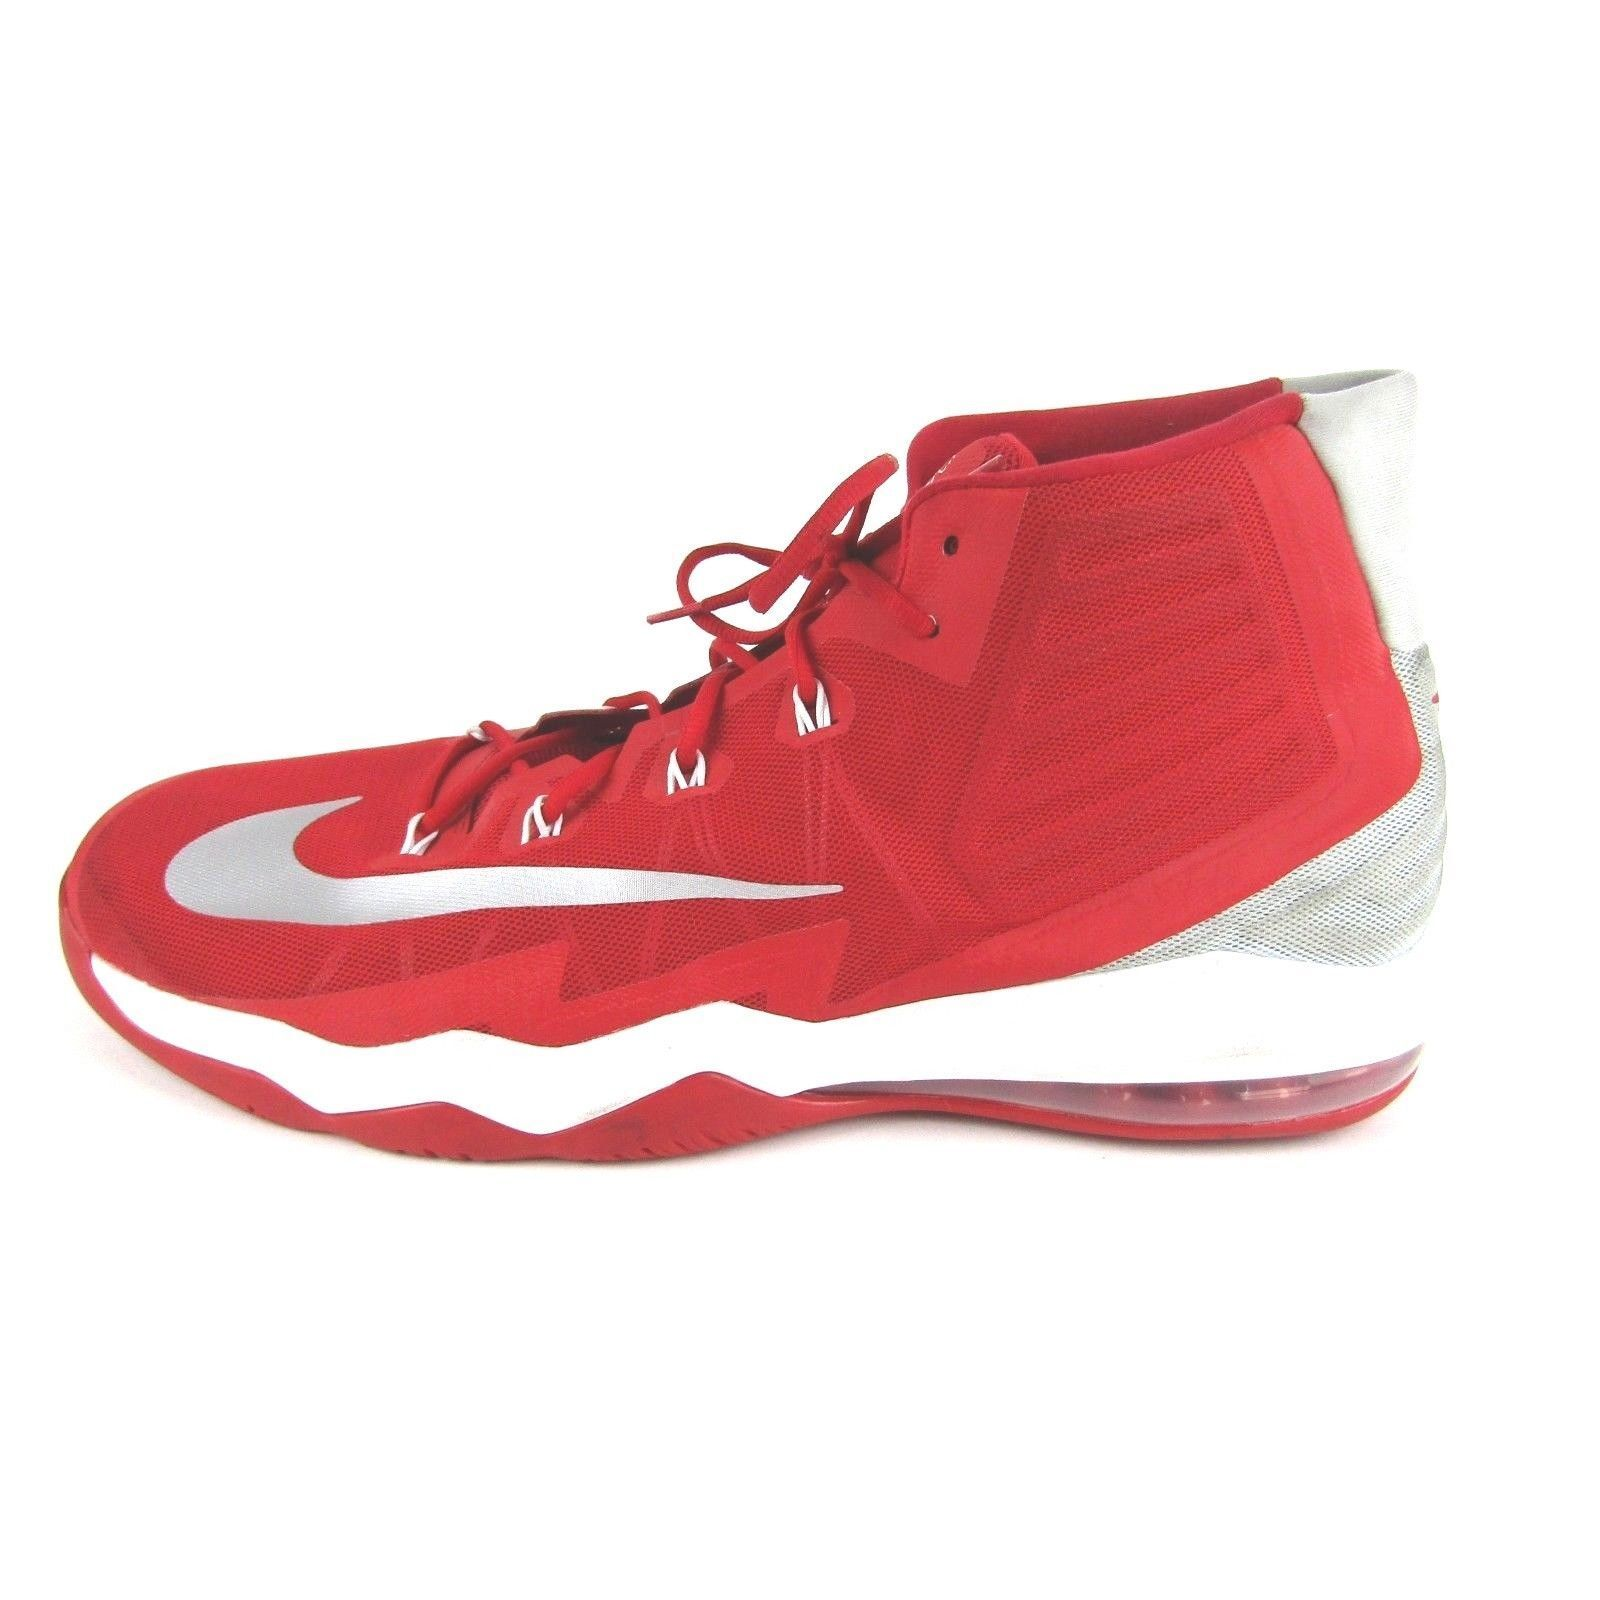 Nike Air Max Mens Audacity 2016 shoes University Red Silver 863115-663 Size 17